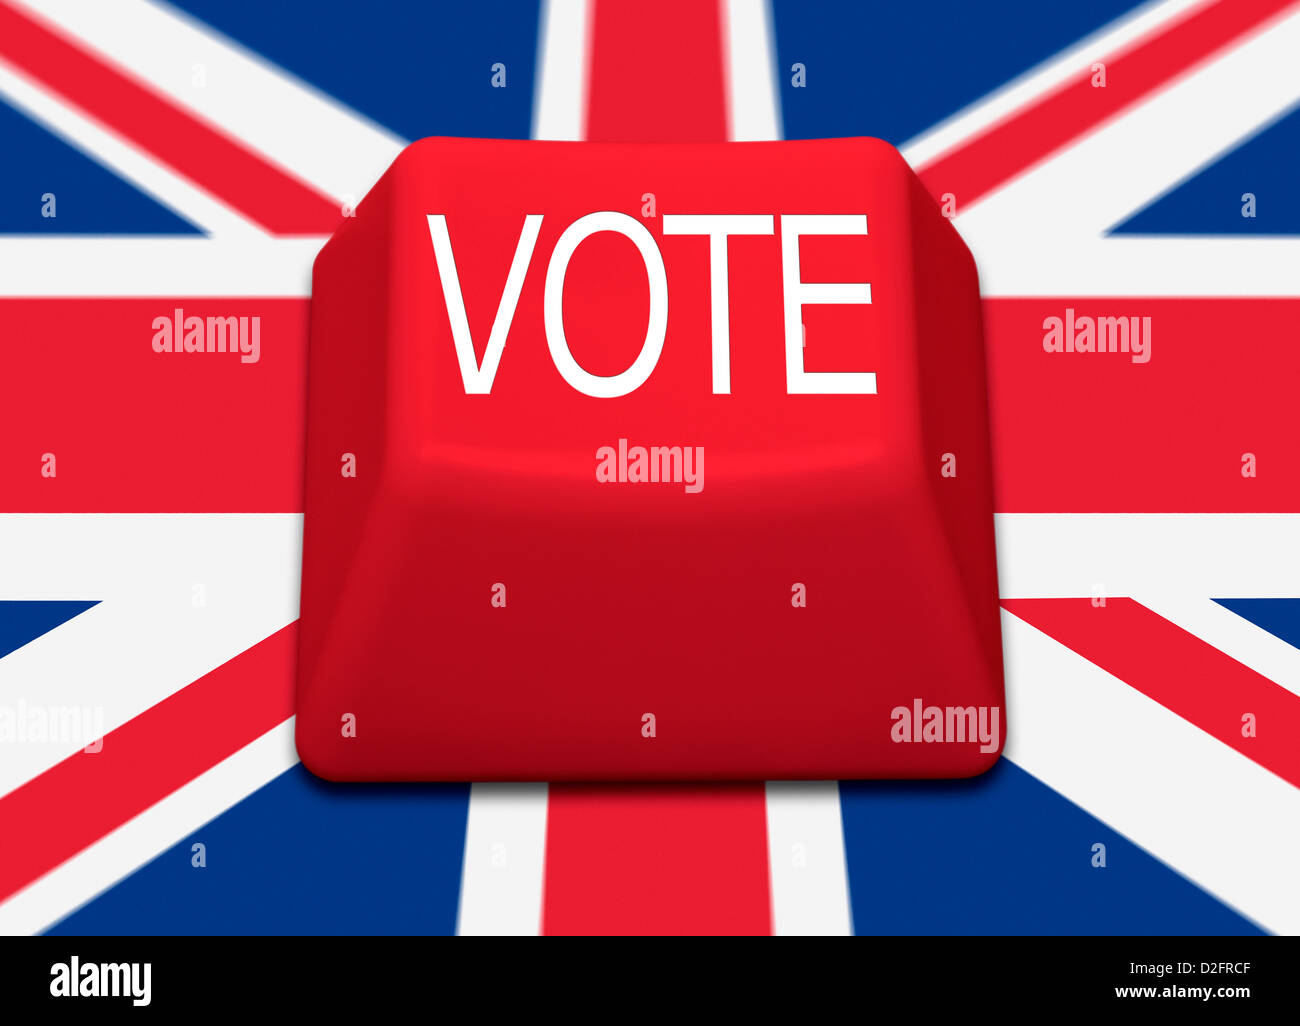 VOTE on a red computer key with Union Jack flag background. - Stock Image